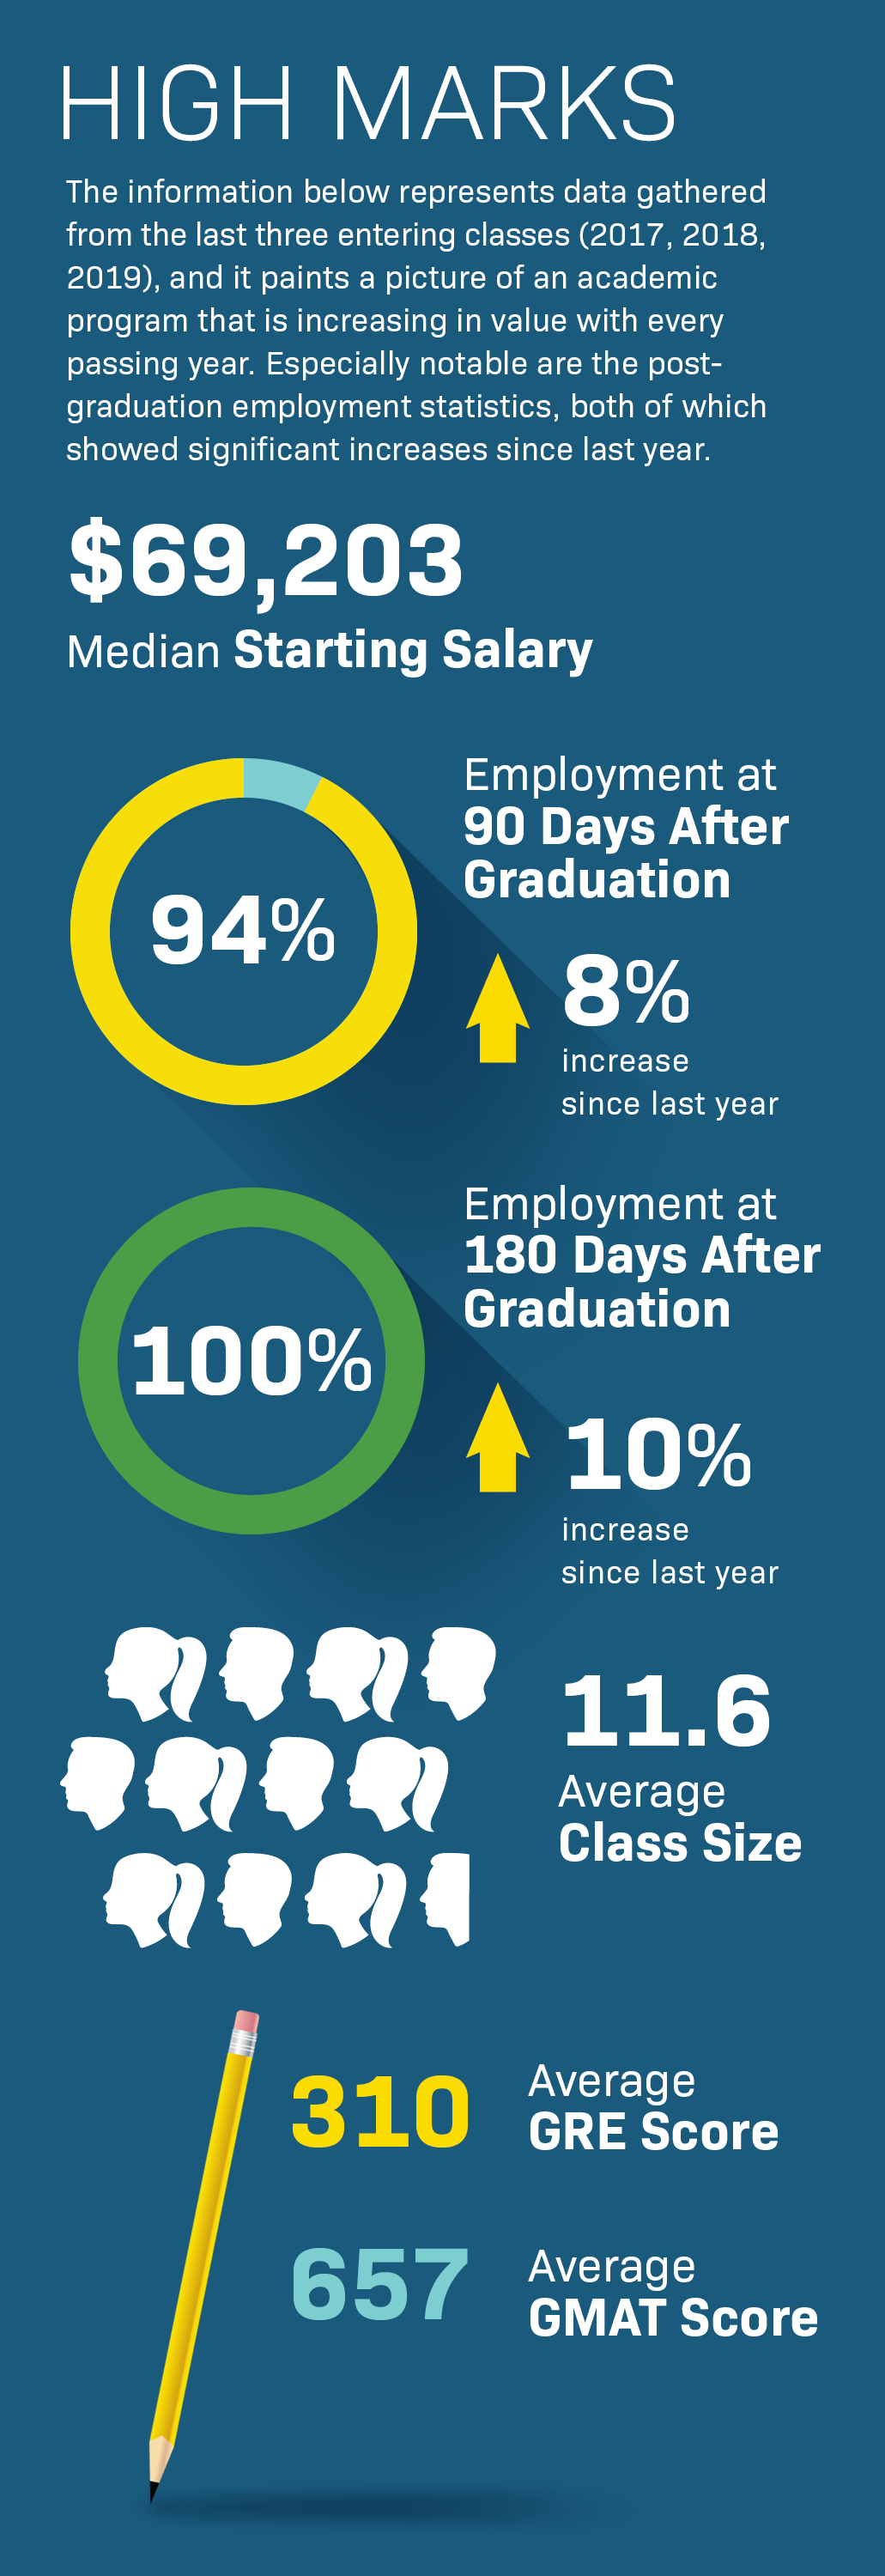 Infographic of High Marks for Baylor Robbins CHHS Grads